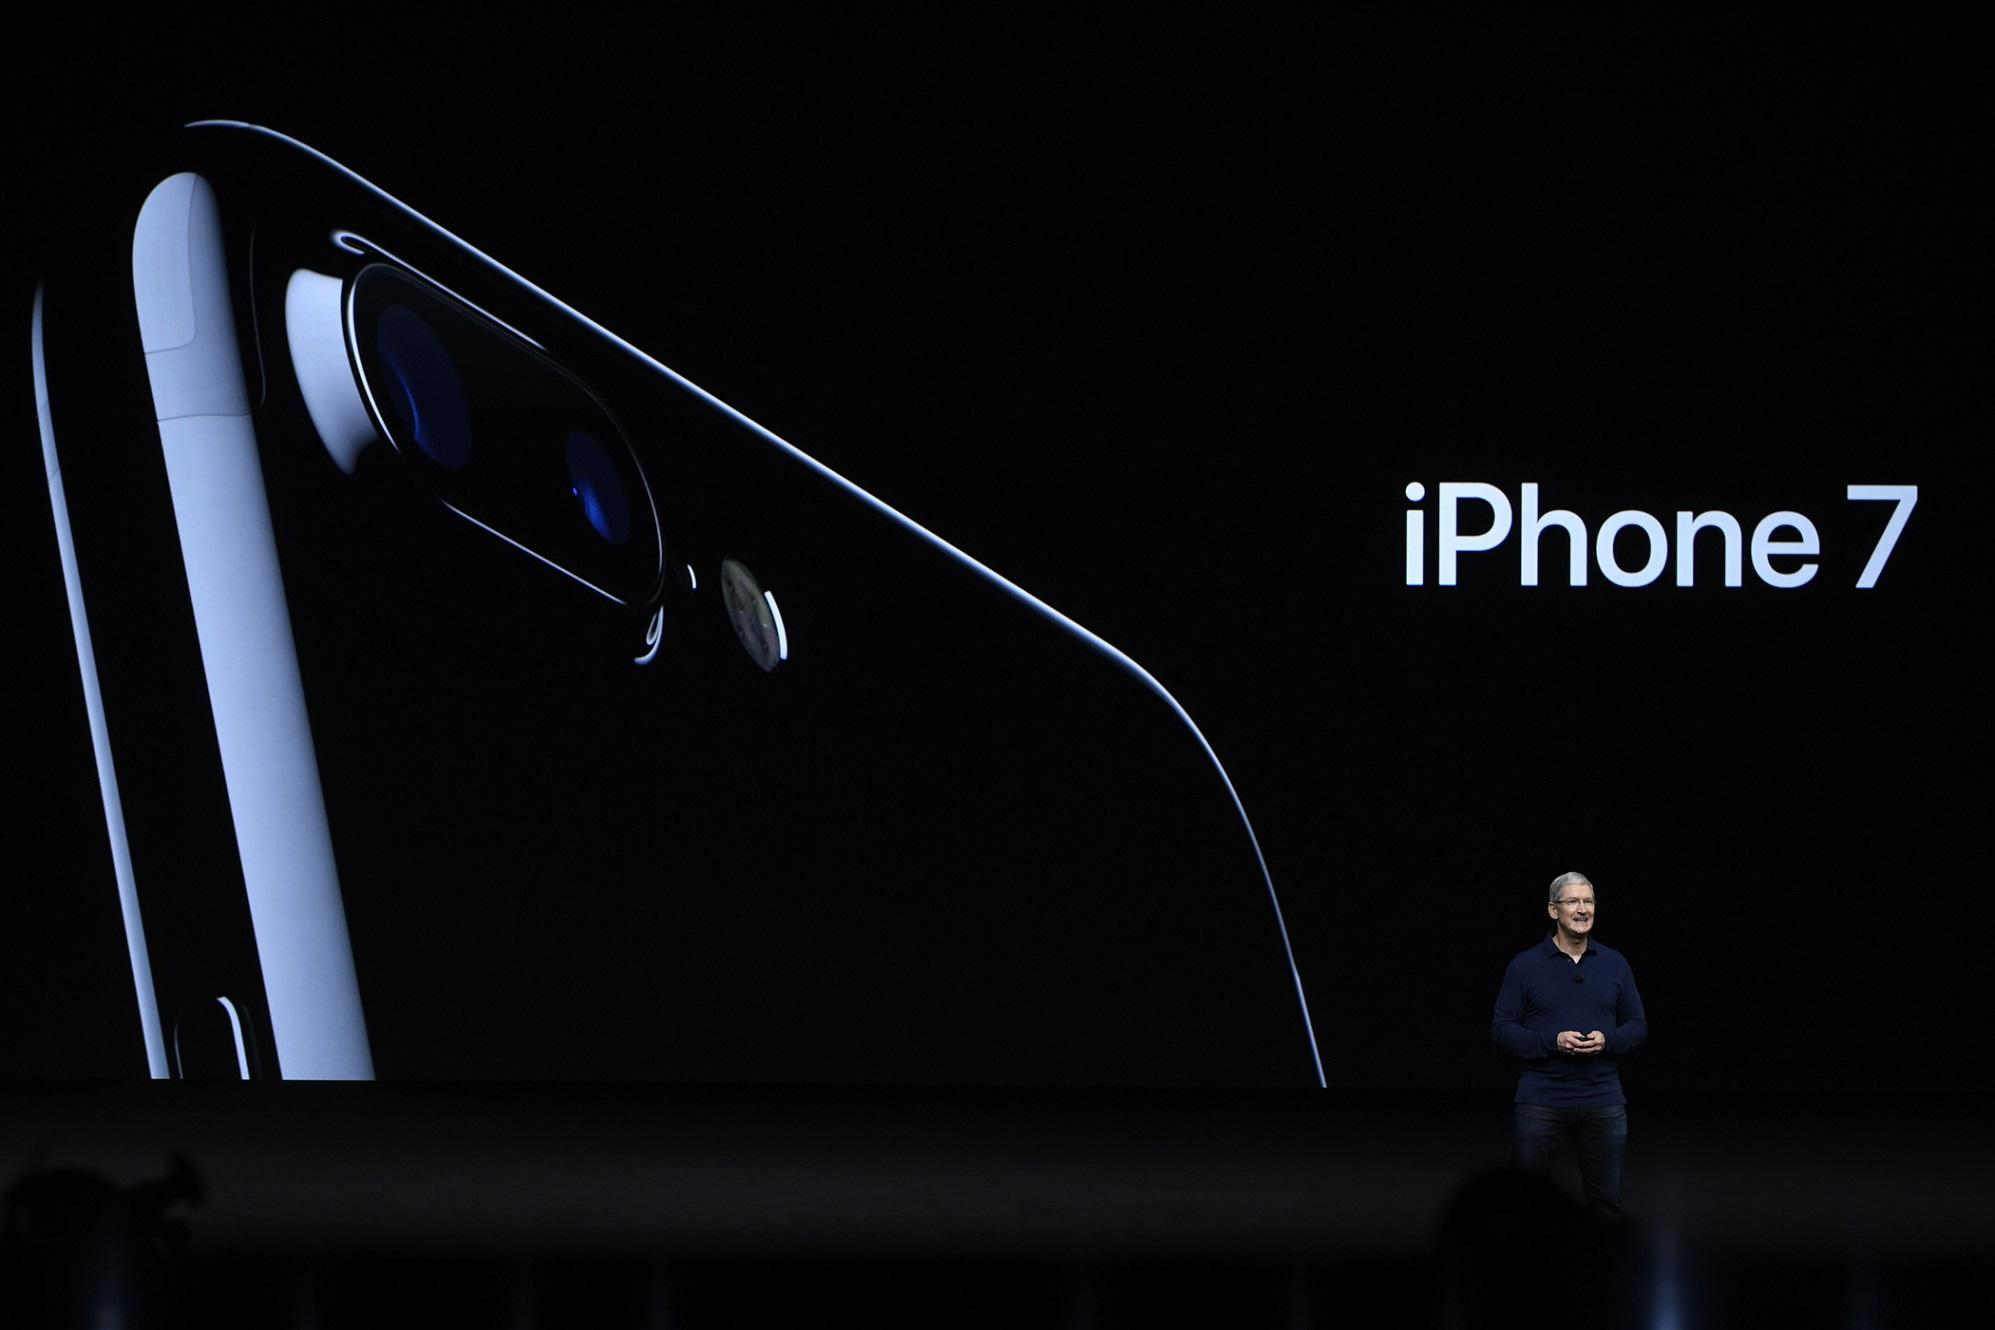 Apple CEO TIM COOK  discusses the iPhone 7 during an Apple media event on September 7, 2016 in San Francisco, Calif.  (Xinhua/Zuma Press/TNS)